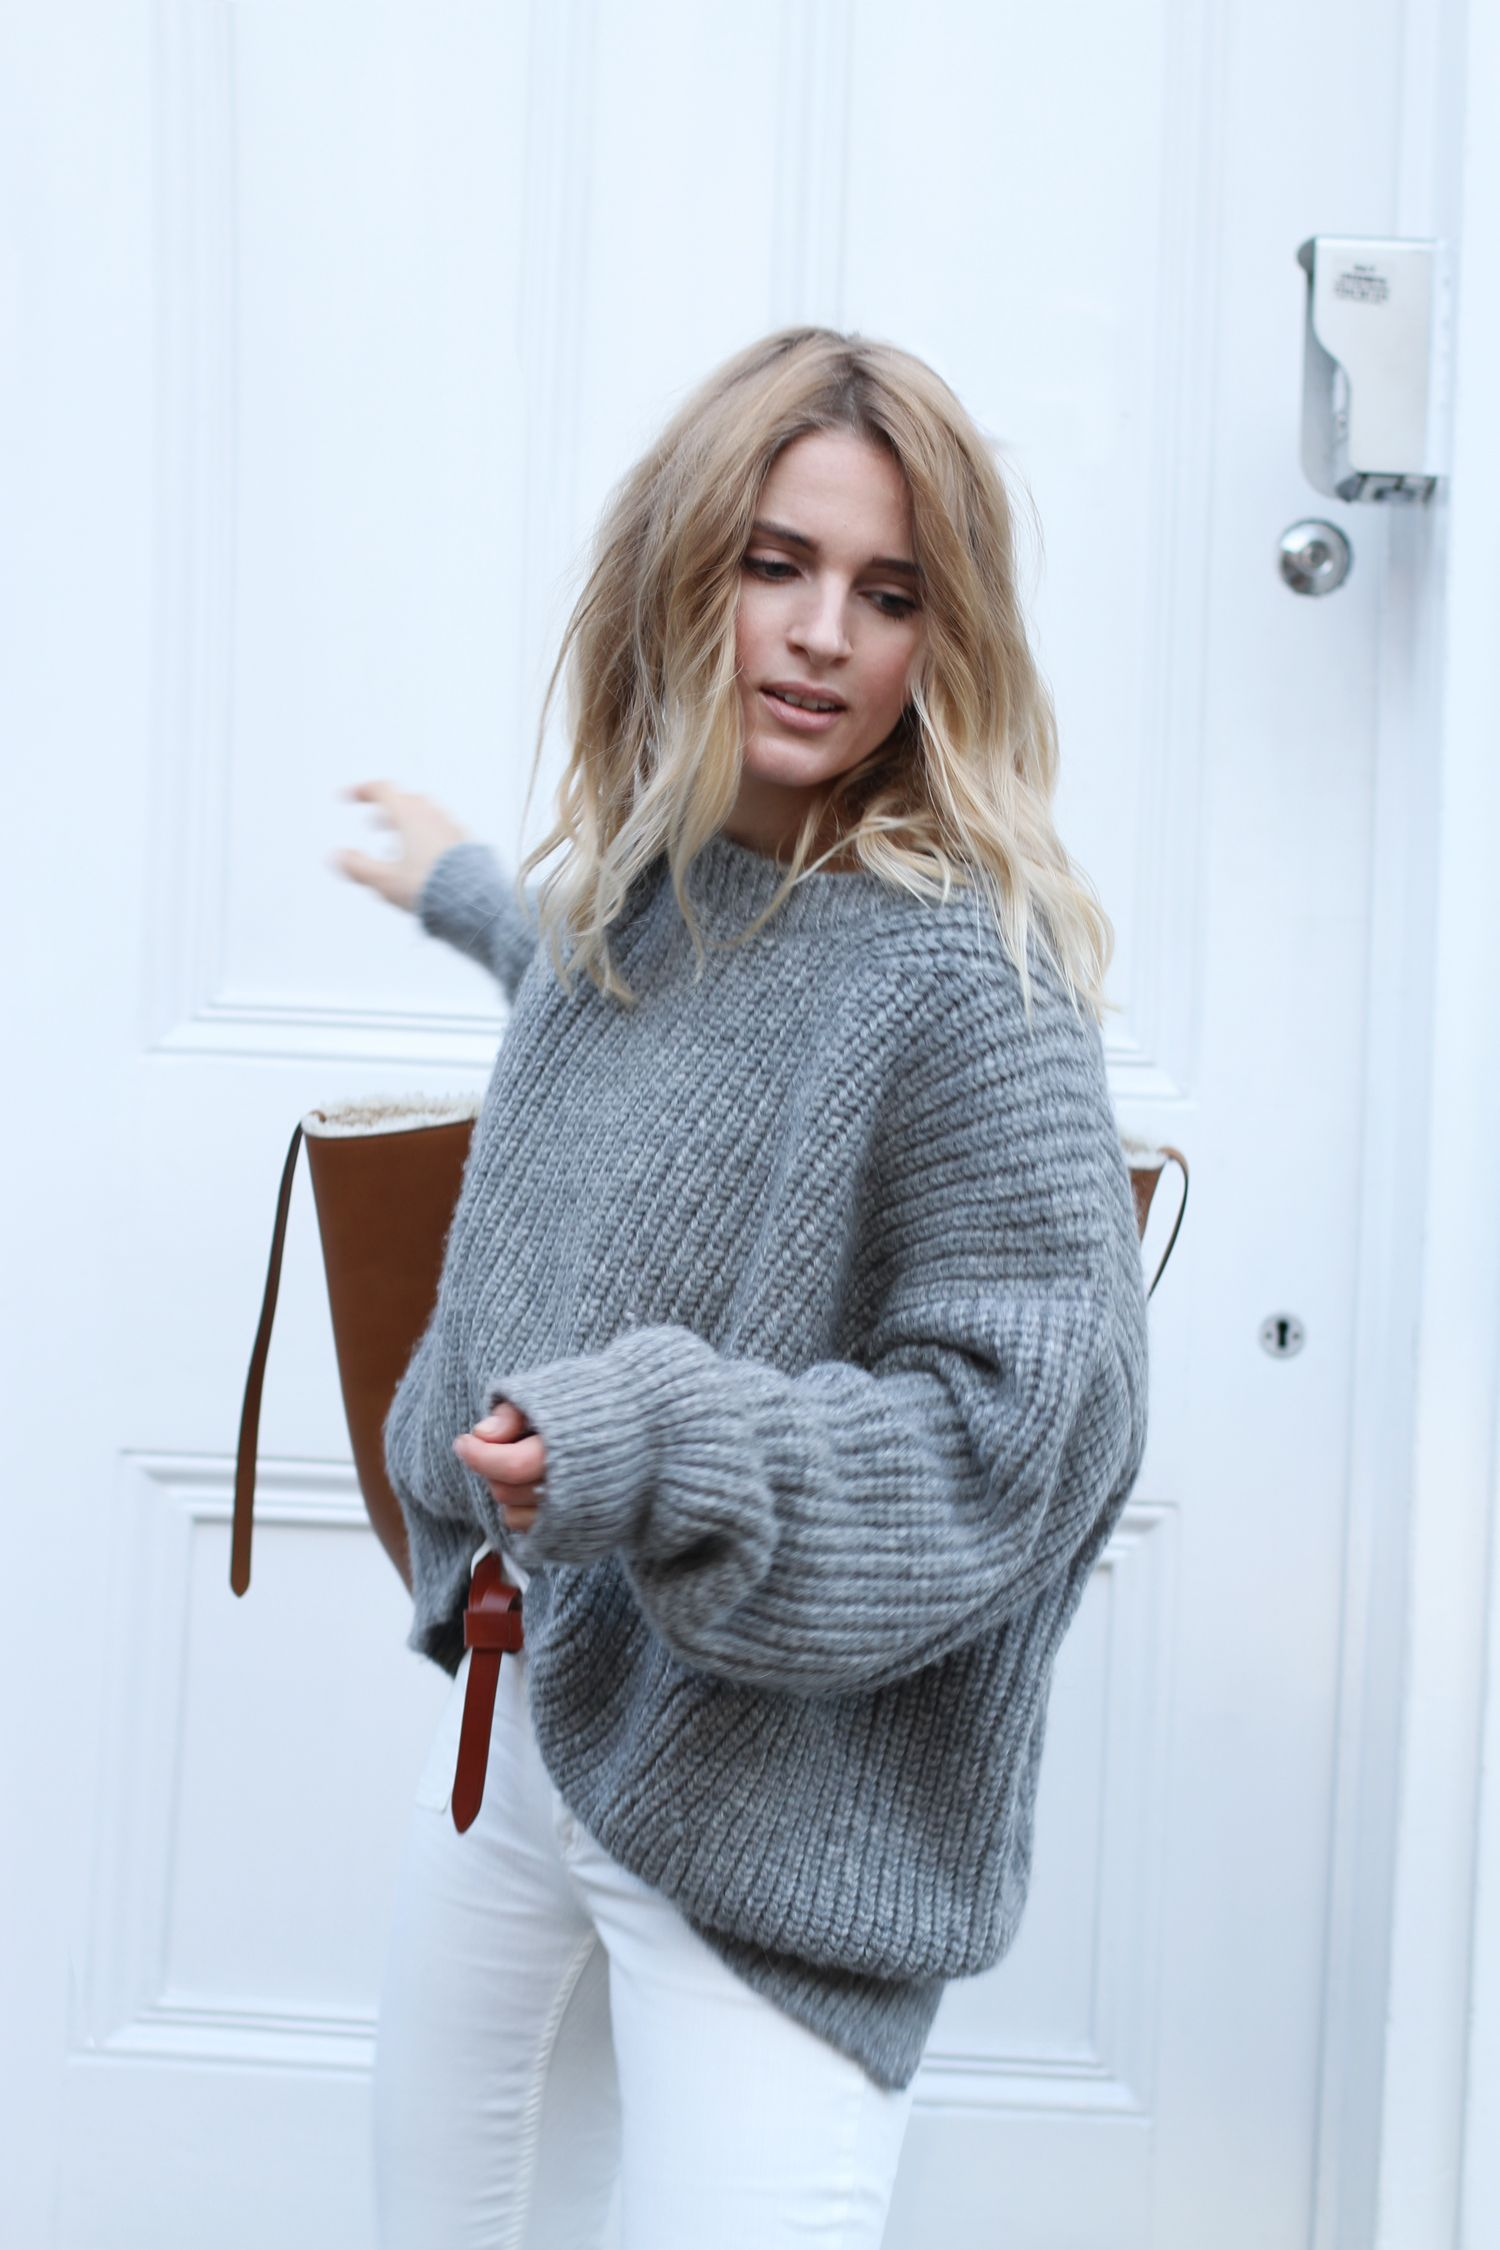 Wool sweaters: beautiful and practical